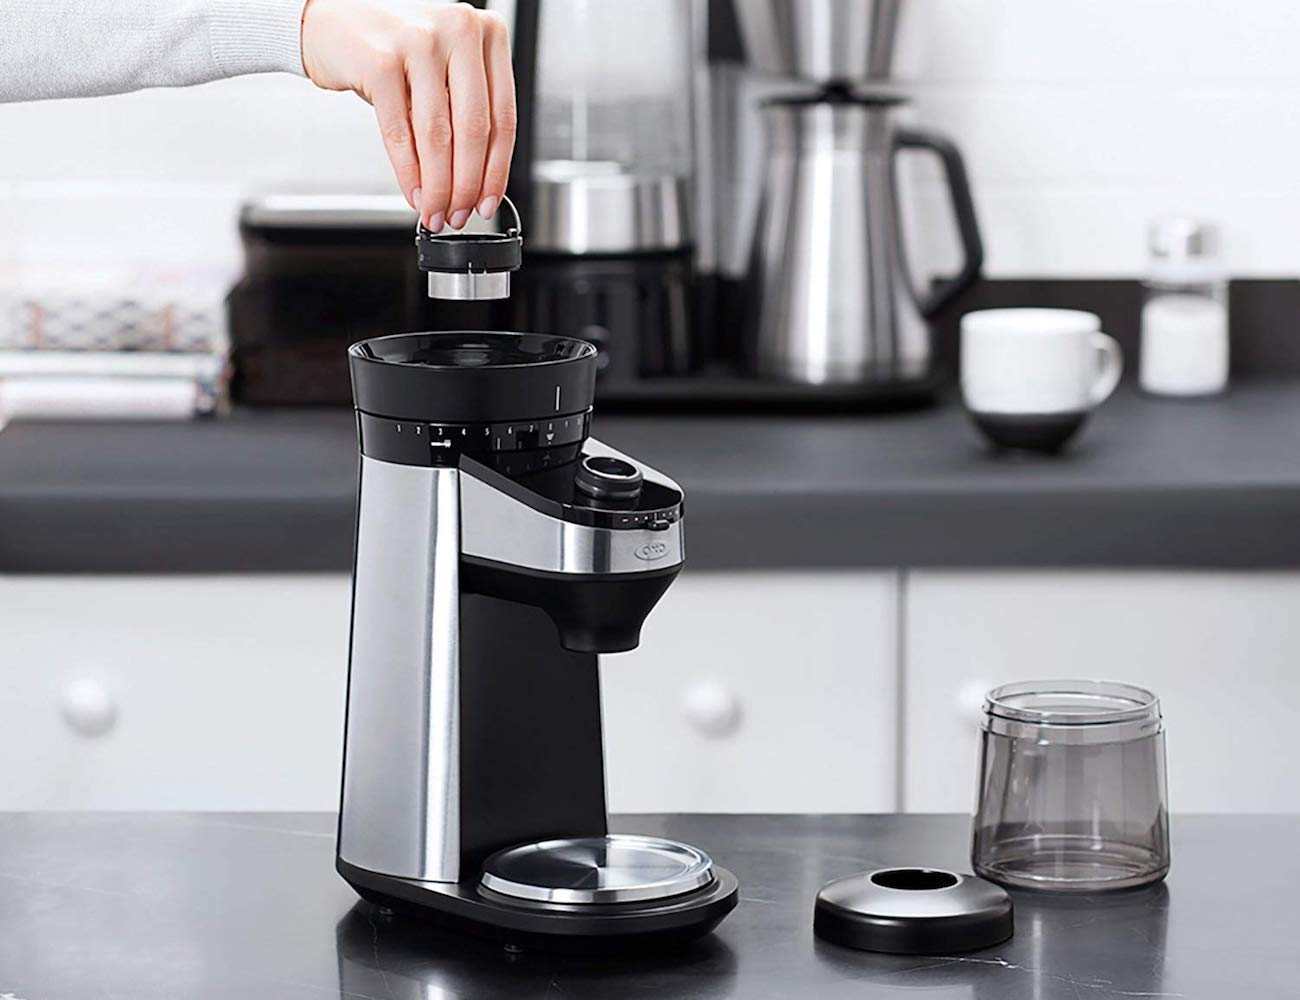 OXO Conical Burr Coffee Grinder